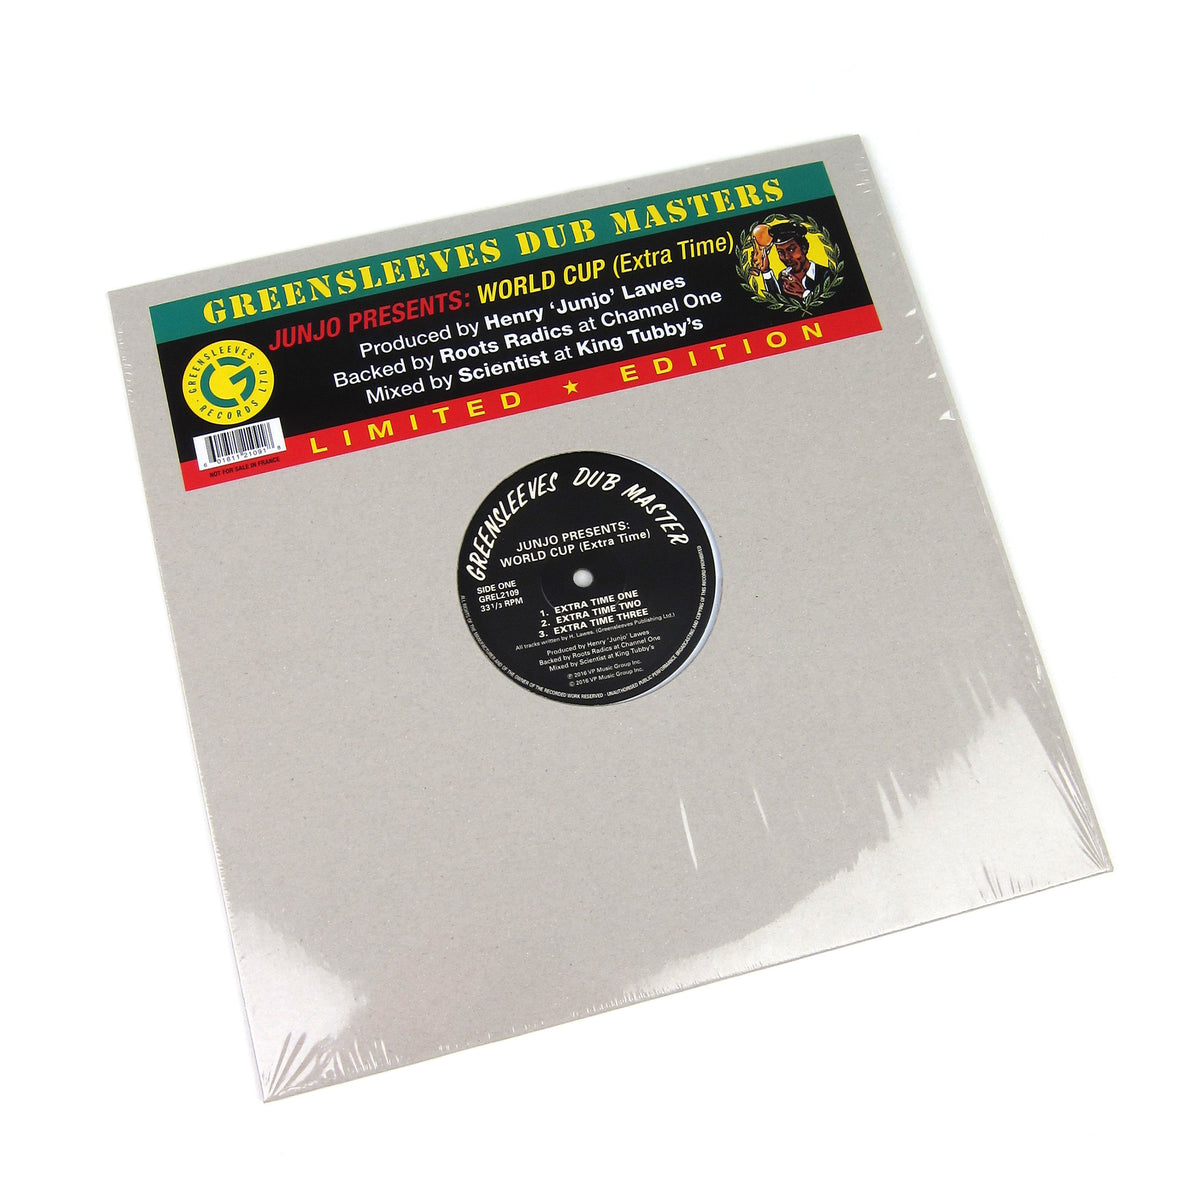 Roots Radics: World Cup / Extra Time Vinyl LP (Record Store Day)